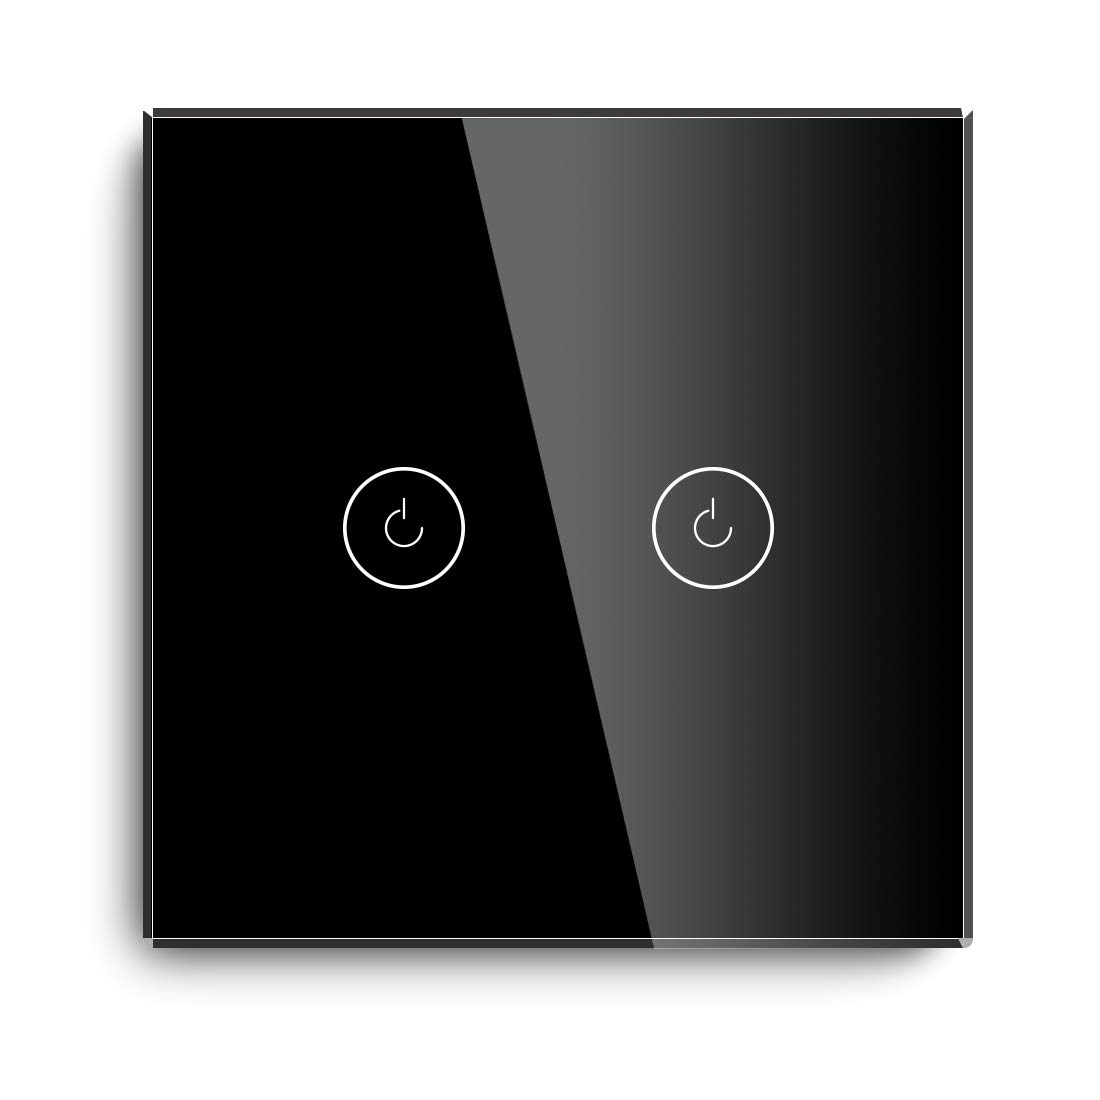 BSEED Smart Light Switch, Compatible with Alexa and Google Home,2 Gang 1 Way WiFi Touch Switch with Smart Life APP Control and Timing Function, Black Glass Panel Alexa Switch 【Neutral Wire Required】